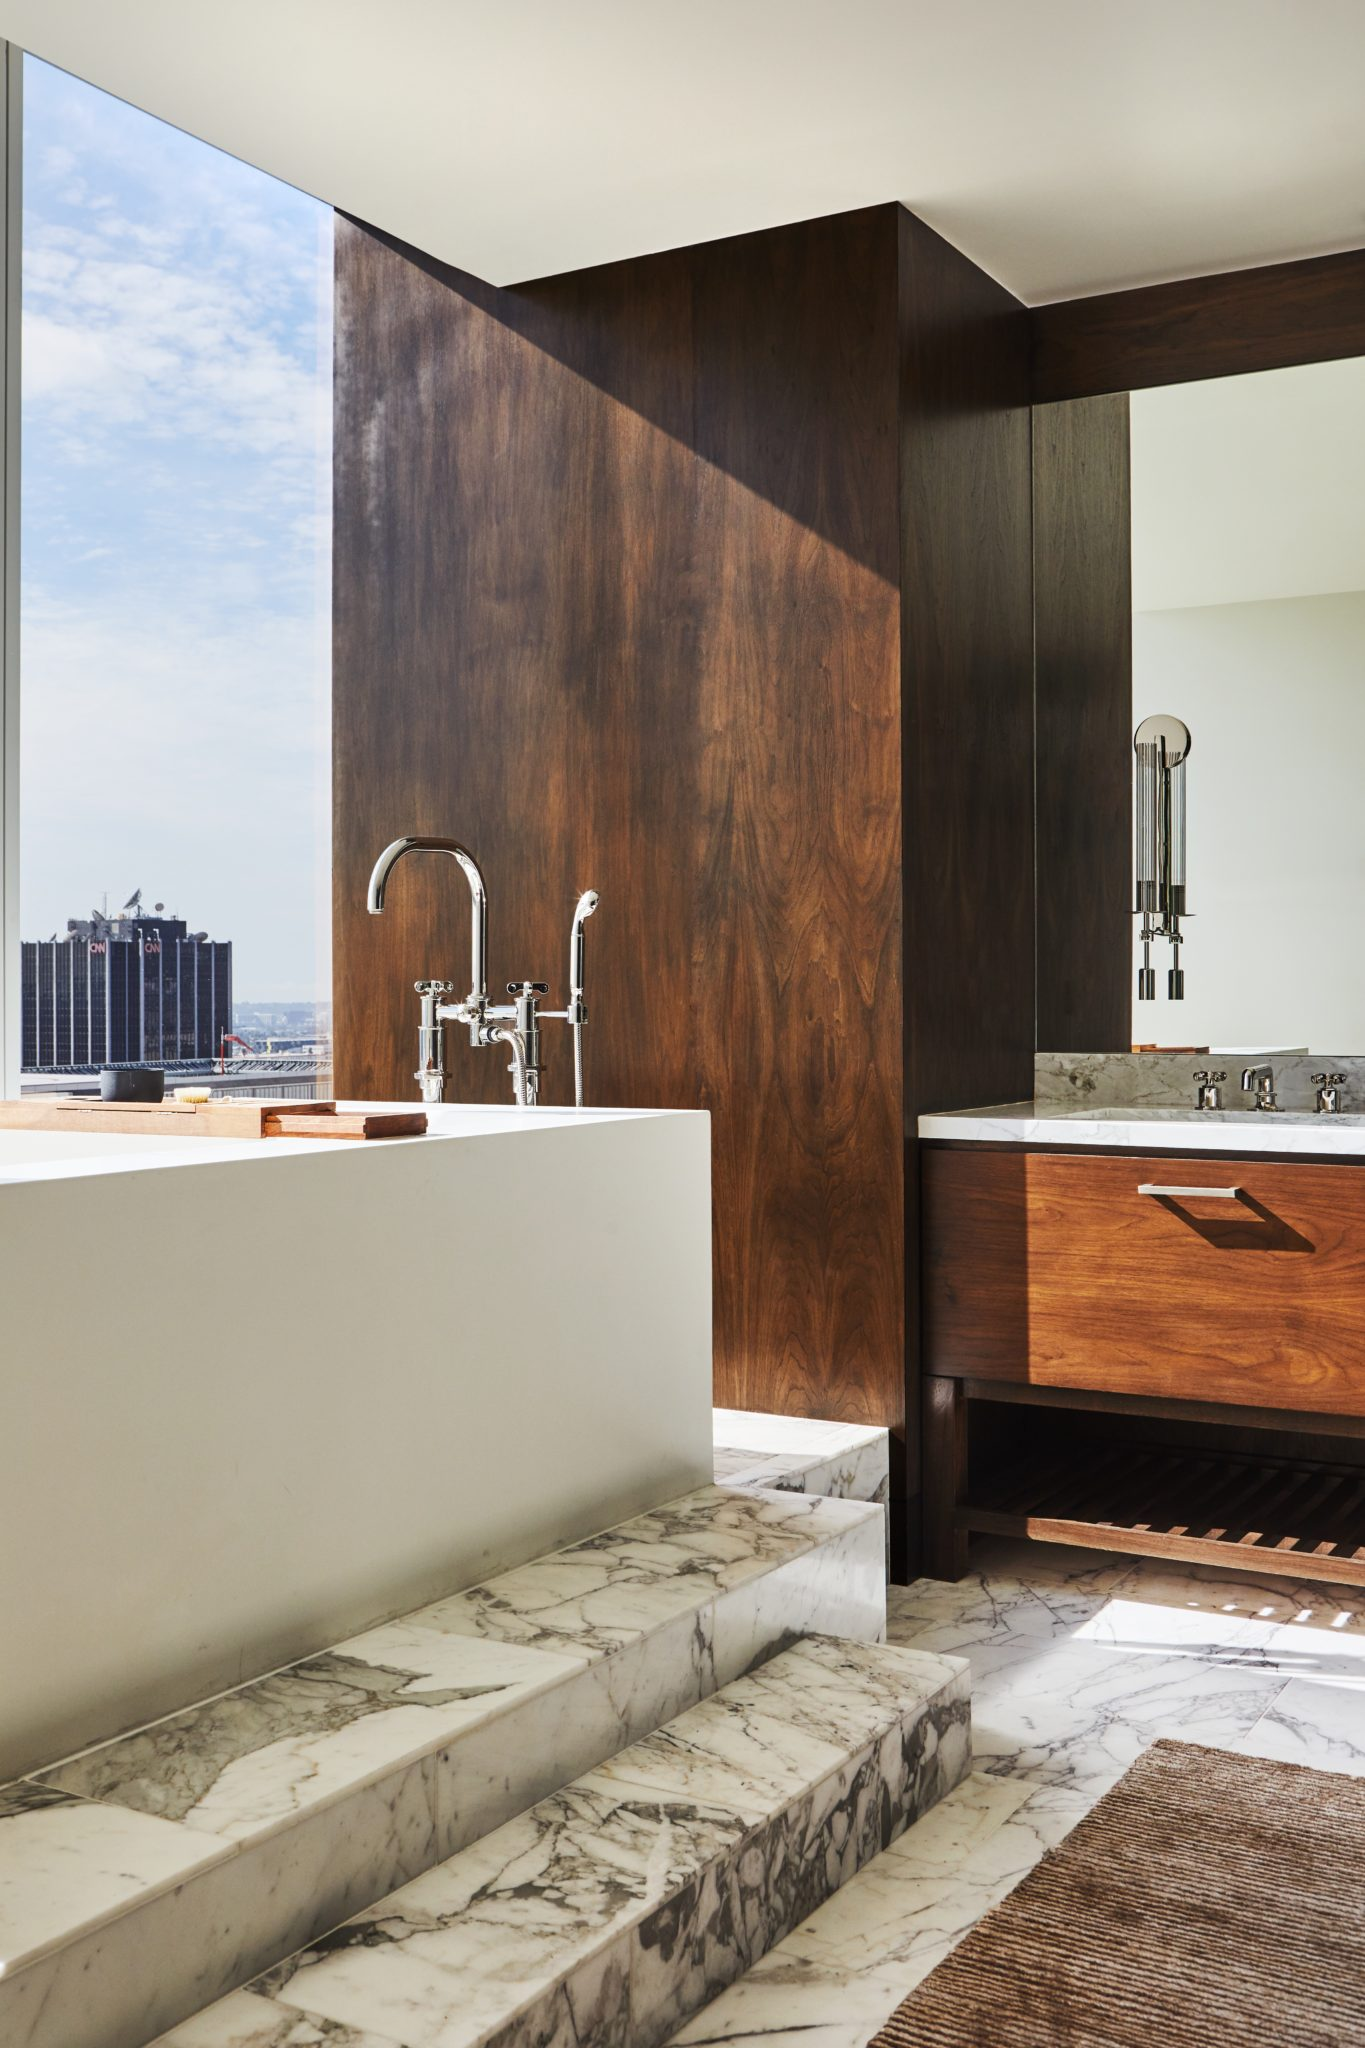 Industrial Chic, Luxury Penthouse - The Vista Residence - Hollywood, California by SFA Design